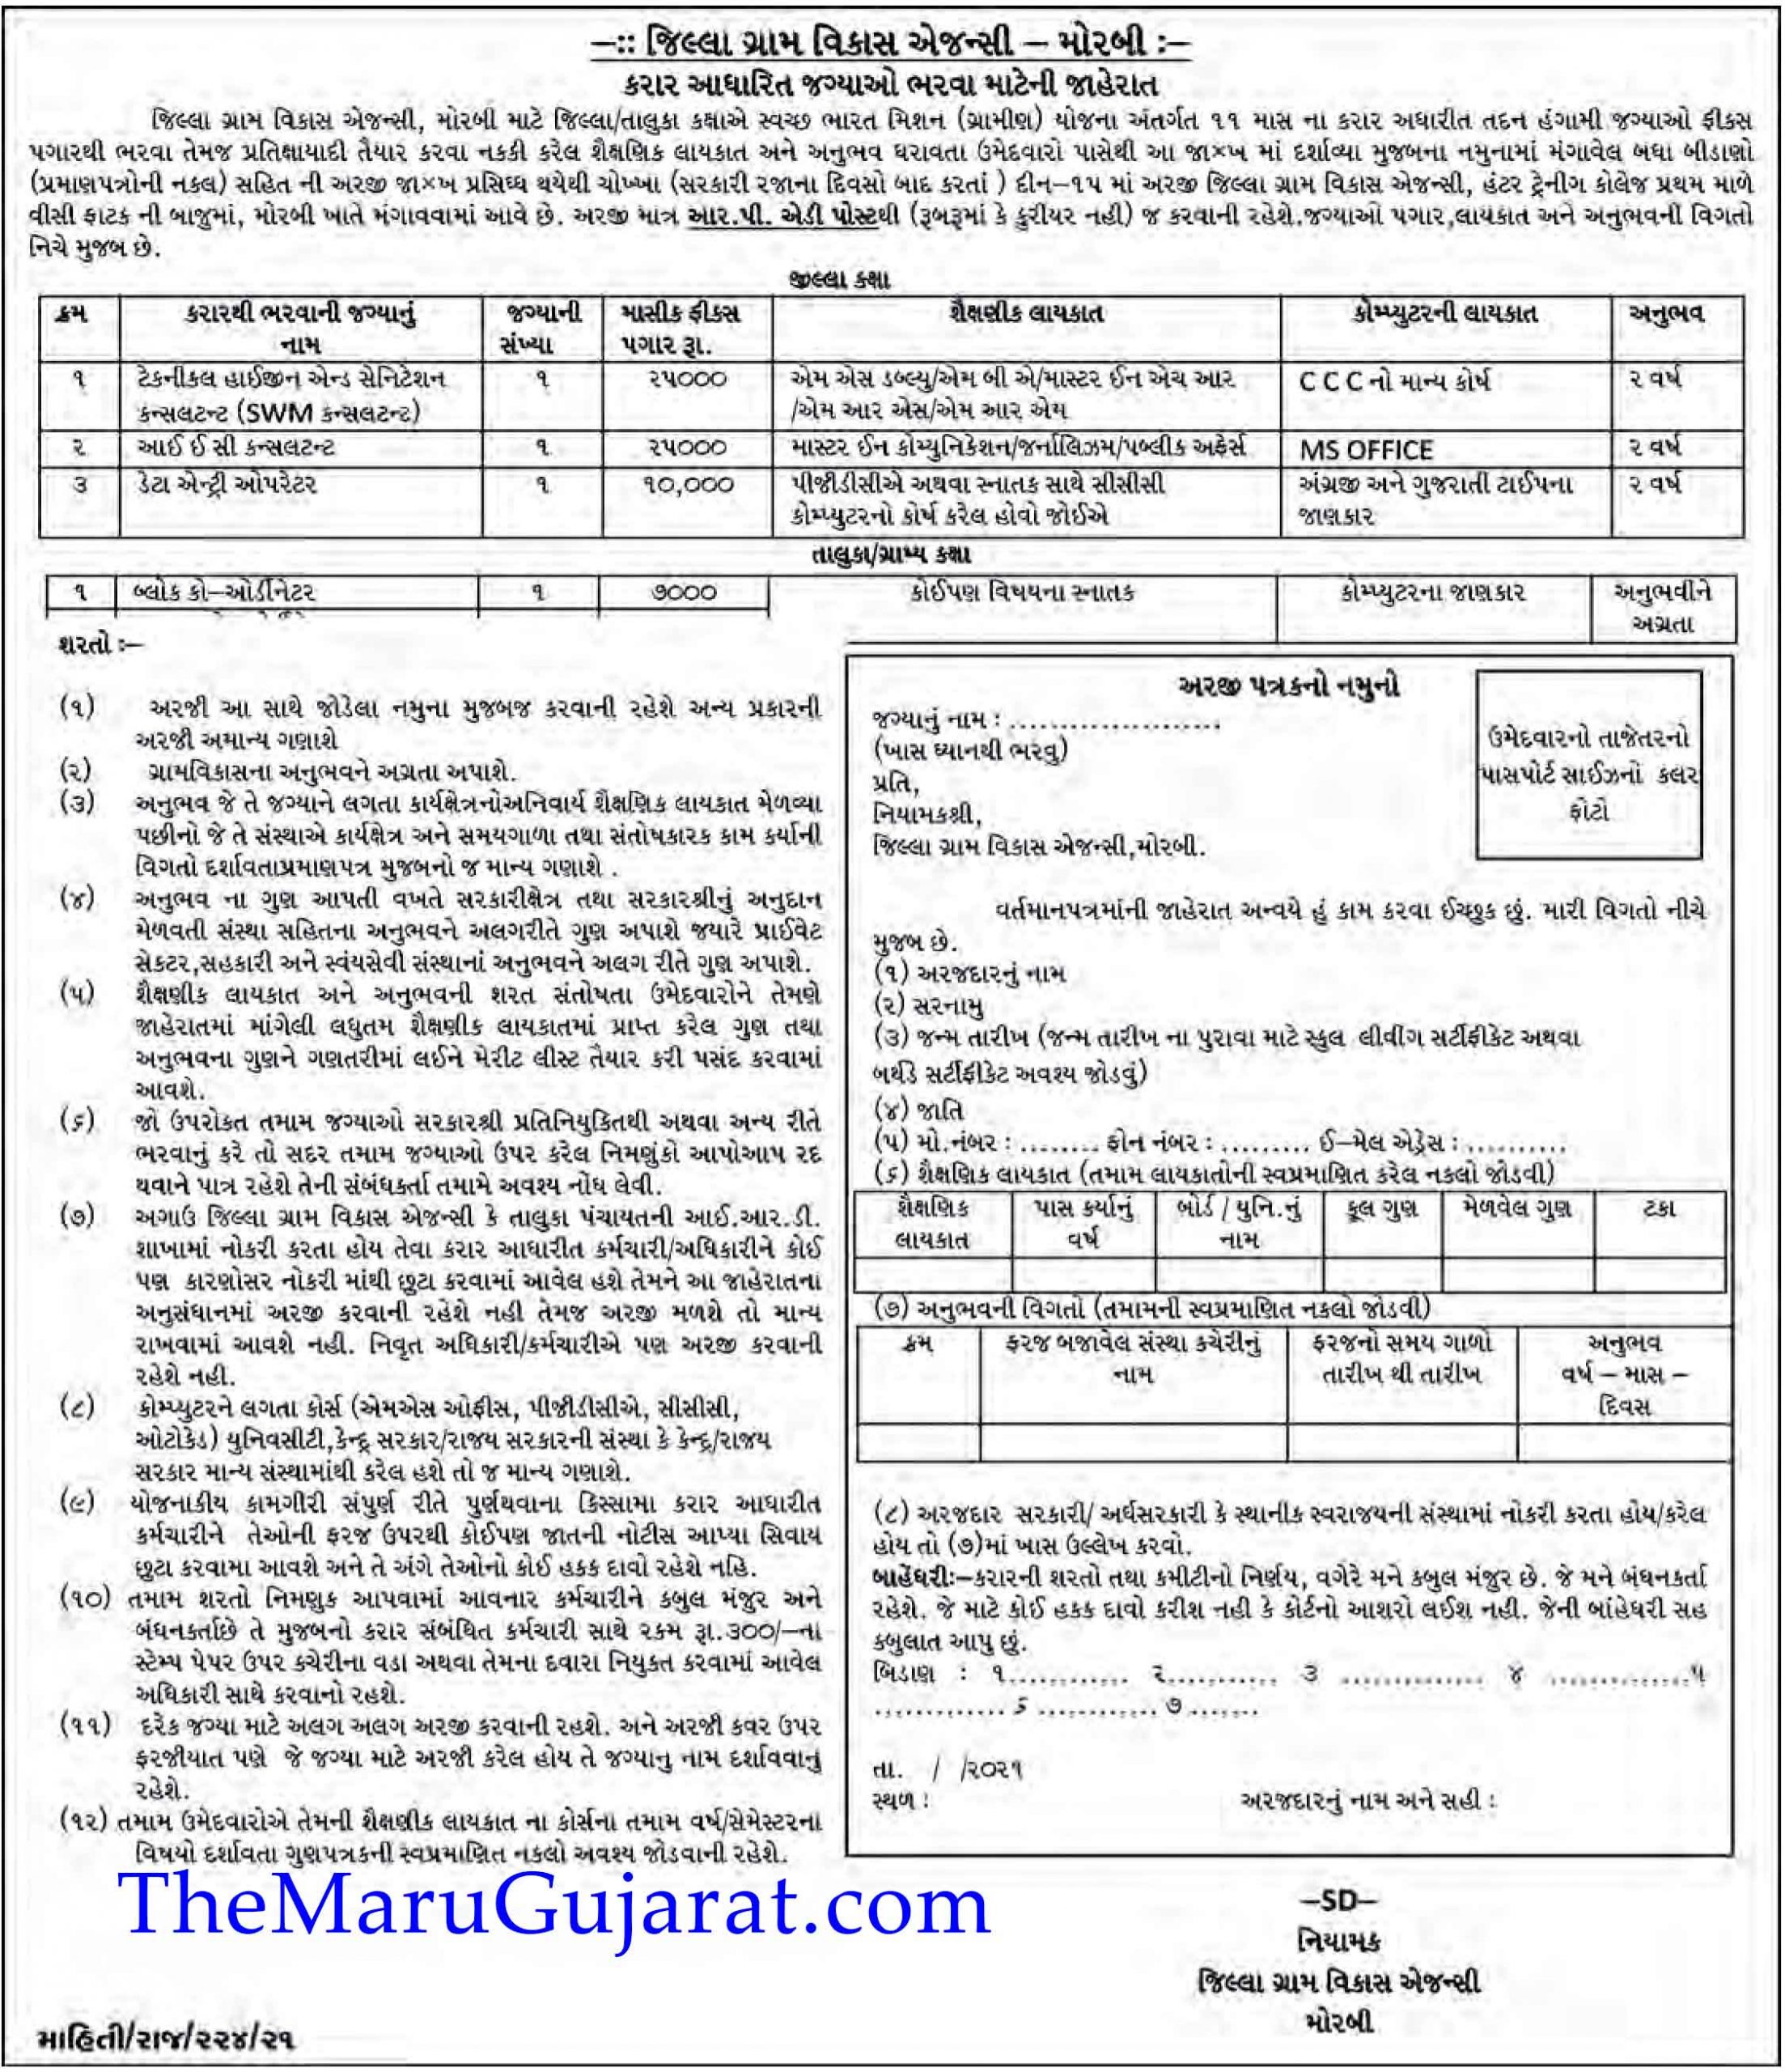 District Rural Development Agency Morbi Recruitment For Data Entry Operator, Block Coordinator & Other Posts 2021